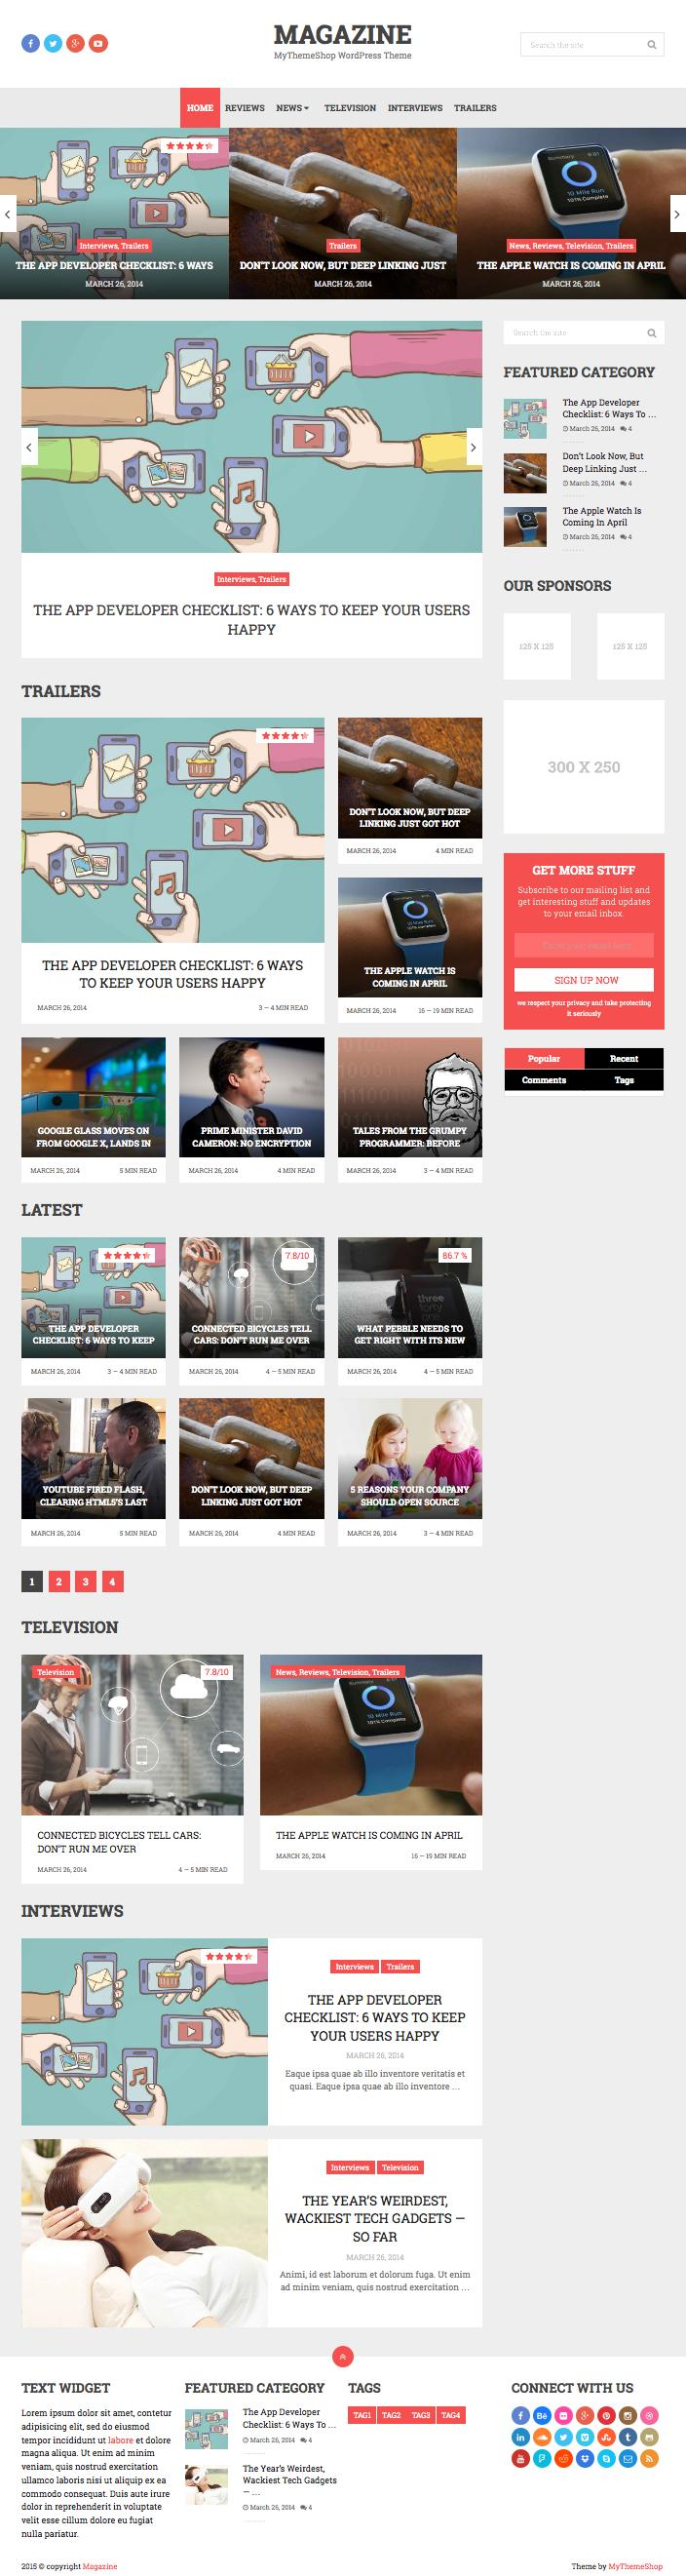 Magazine Responsive WordPress Heavy Content Theme